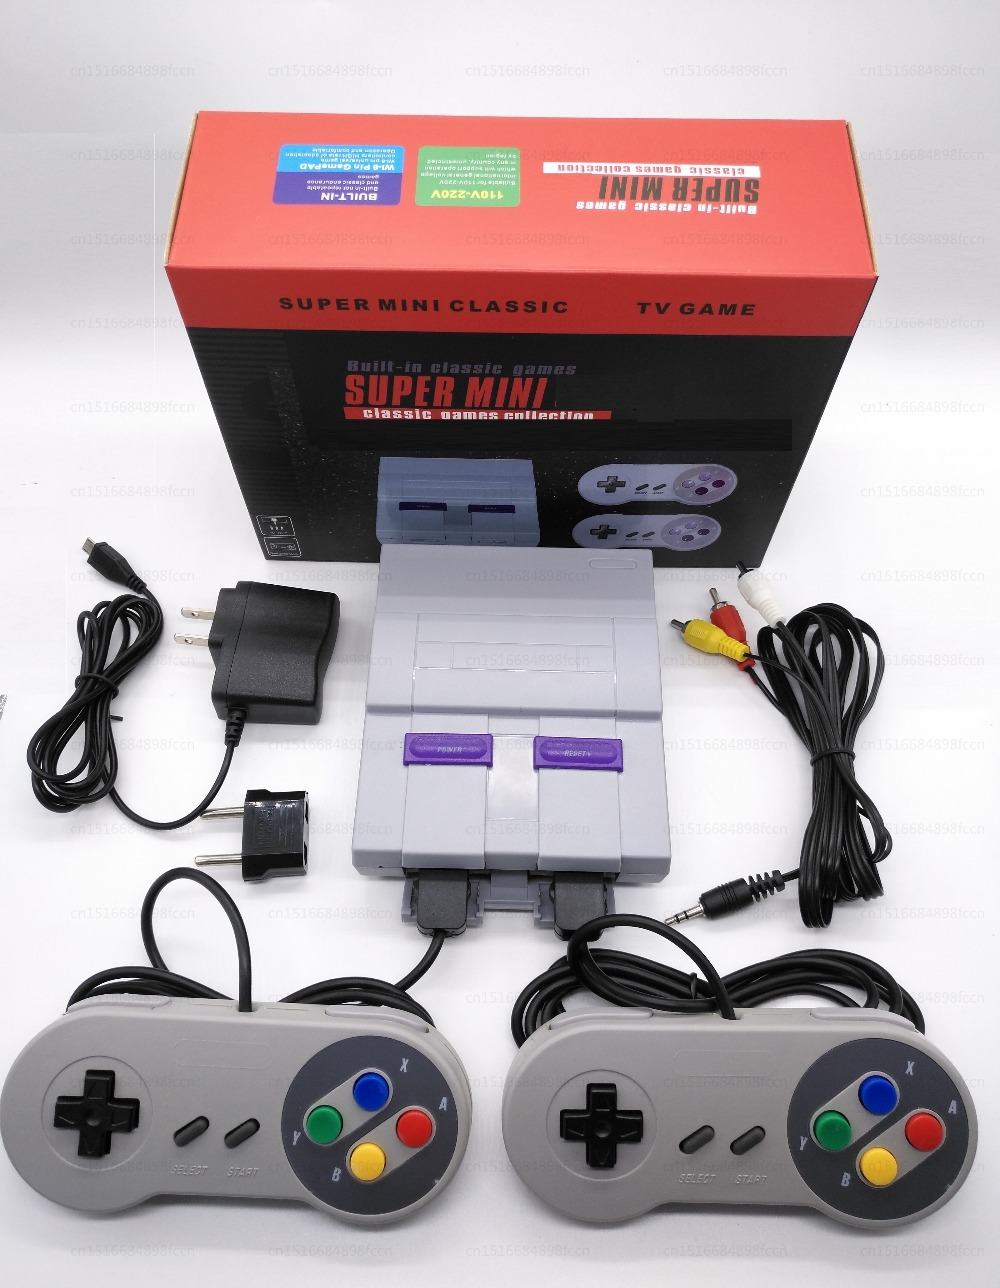 For Snes 16 Bit Games   Retro Mini TV Video Game Console with 94 Built-in Different 16 Bit Games For Snes Two Gamepads AV Out